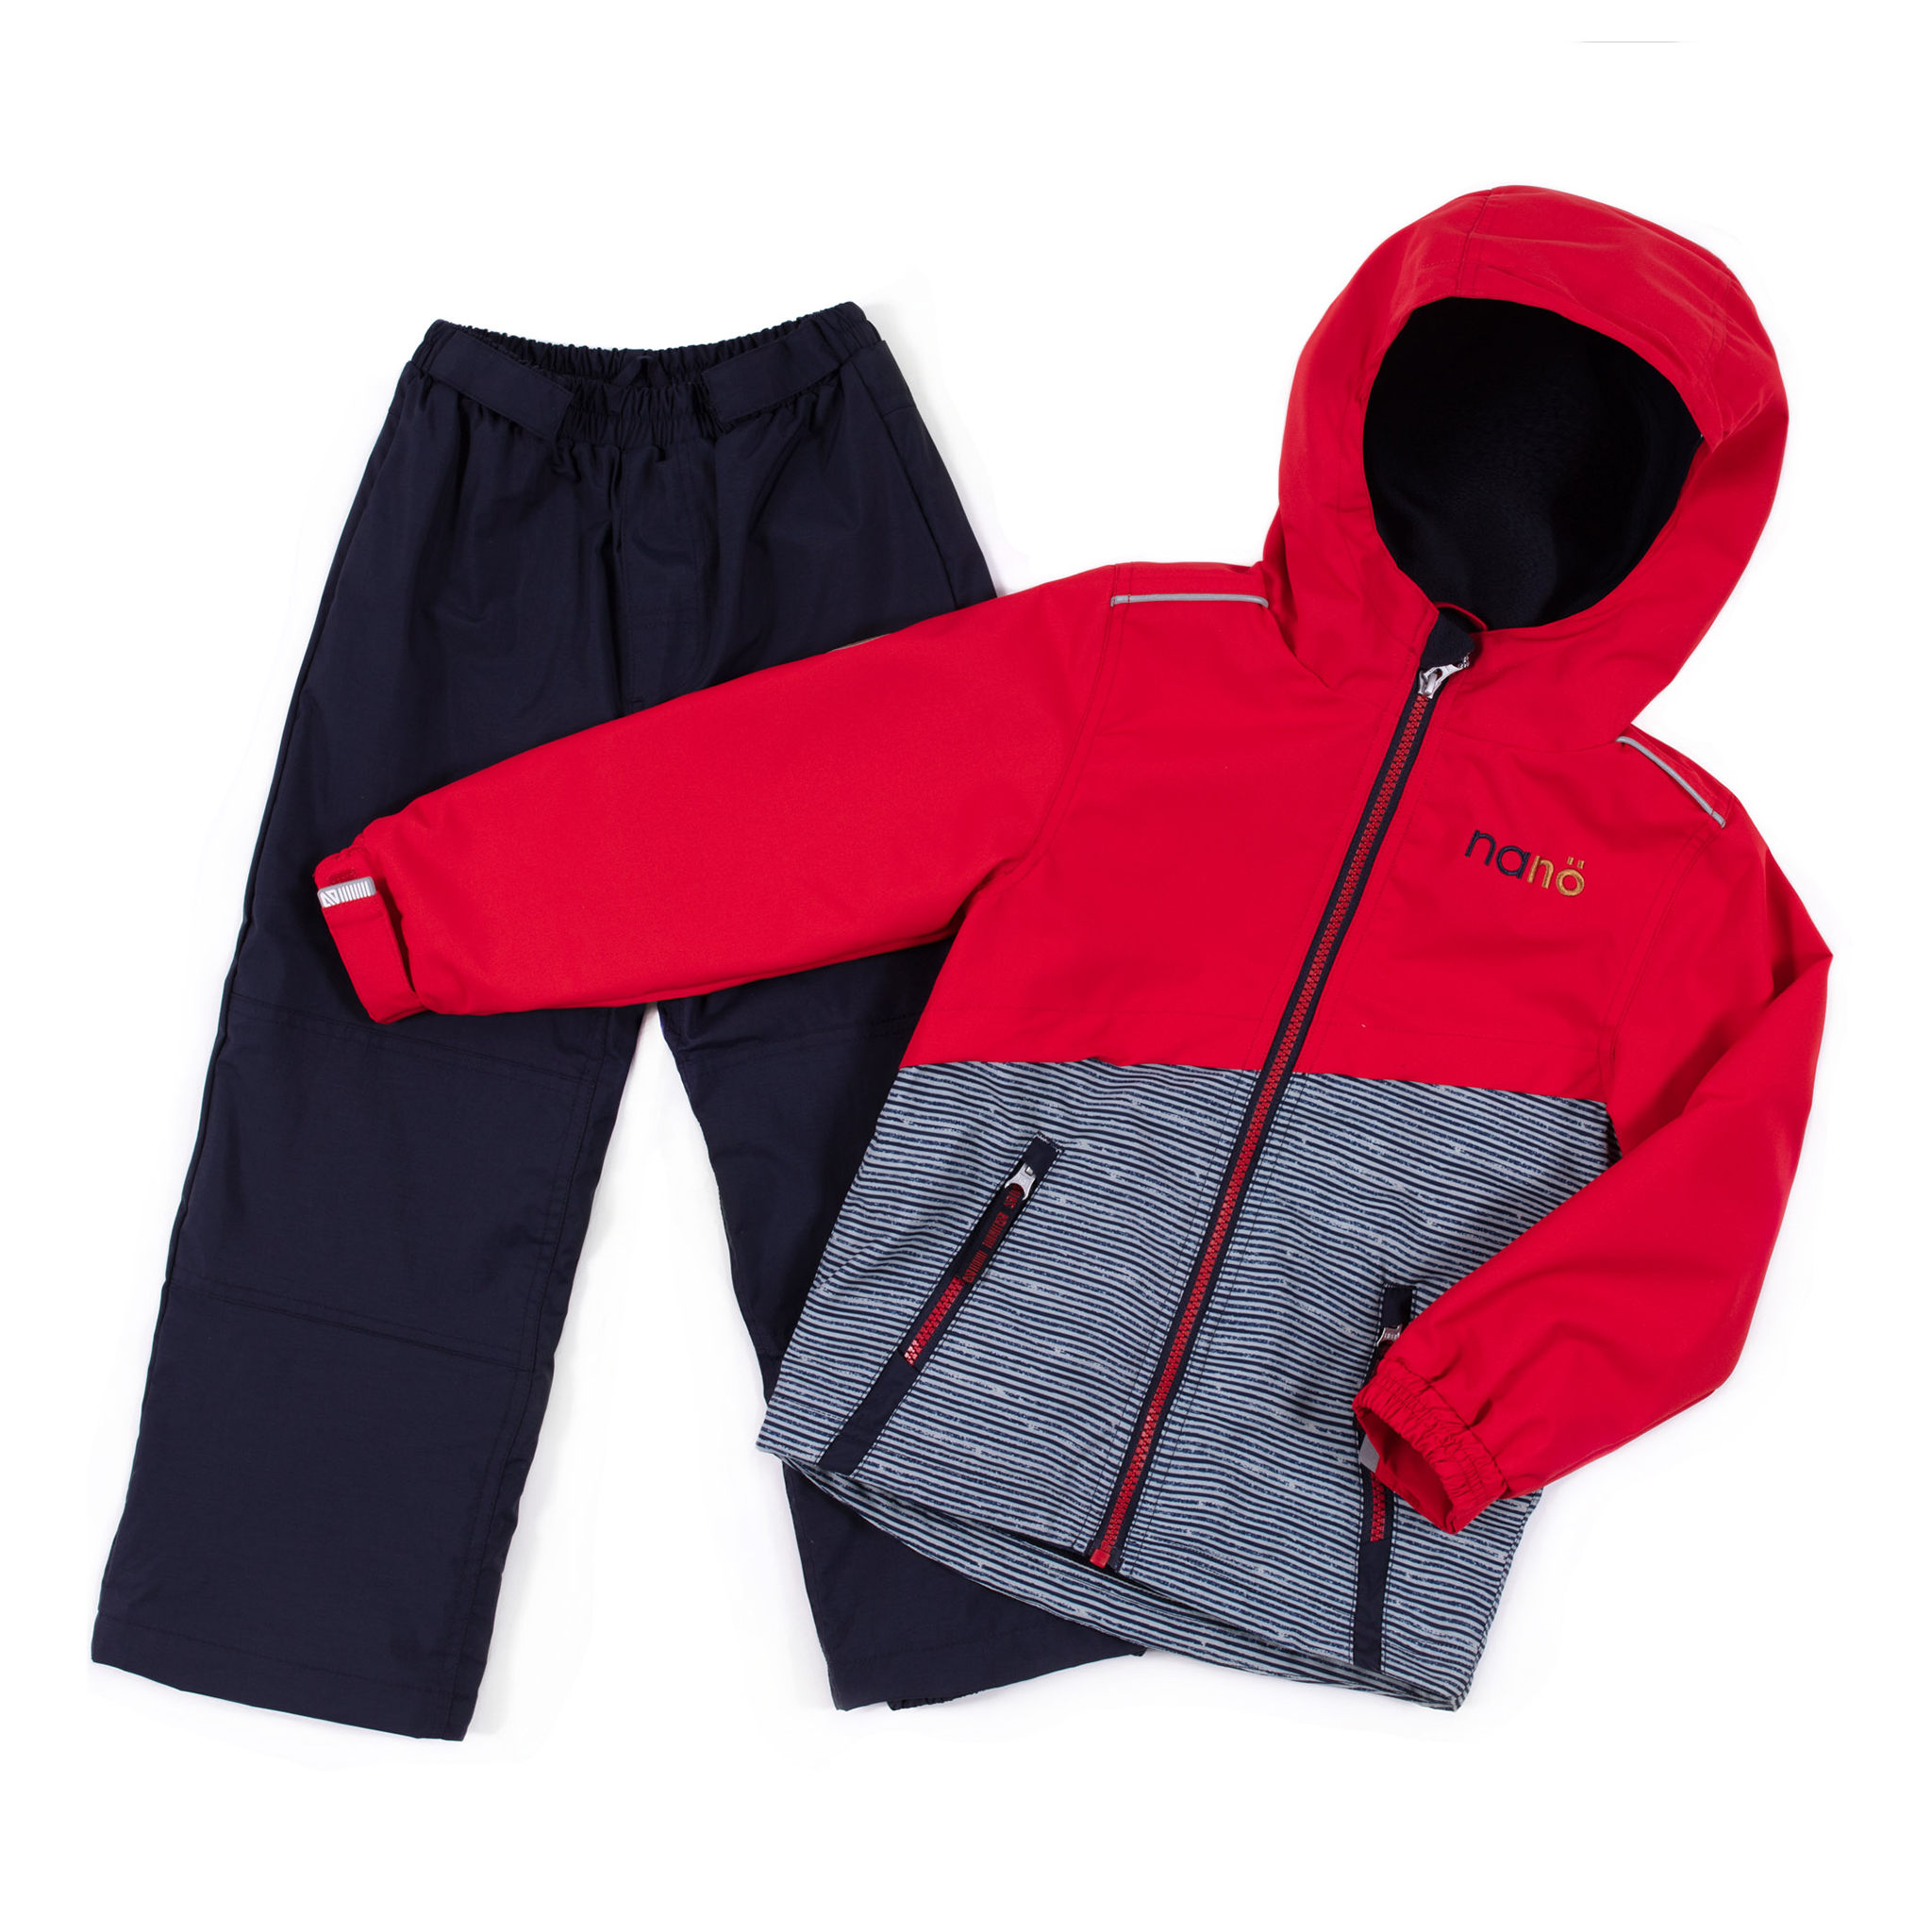 2 pcs outerwear Italie - Red - Boys